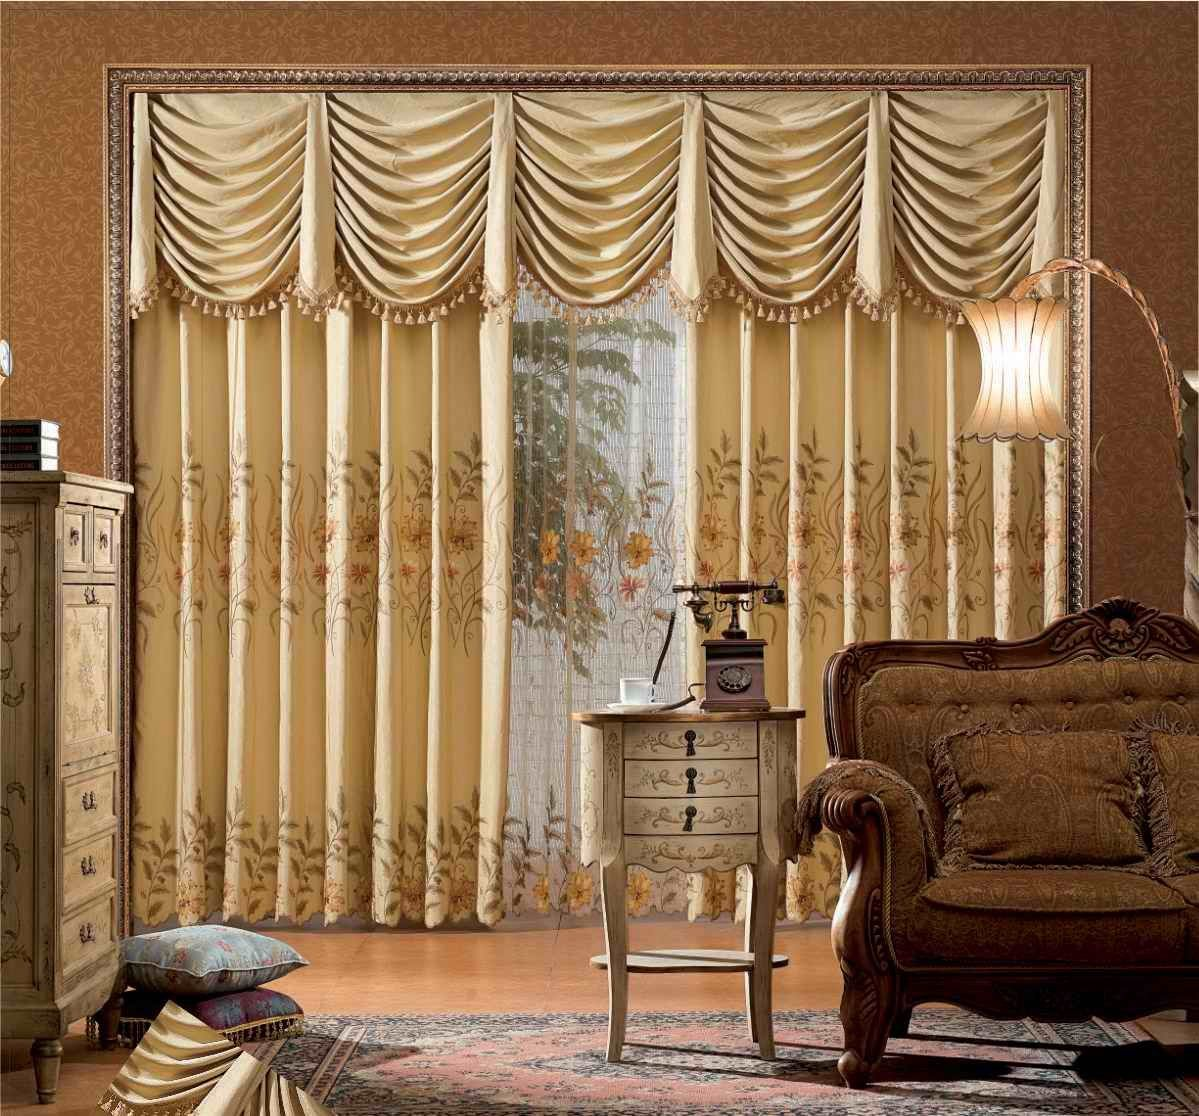 Curtain Designs For Living Room Make Modern Living Room Curtains  Httphighlifestylewp